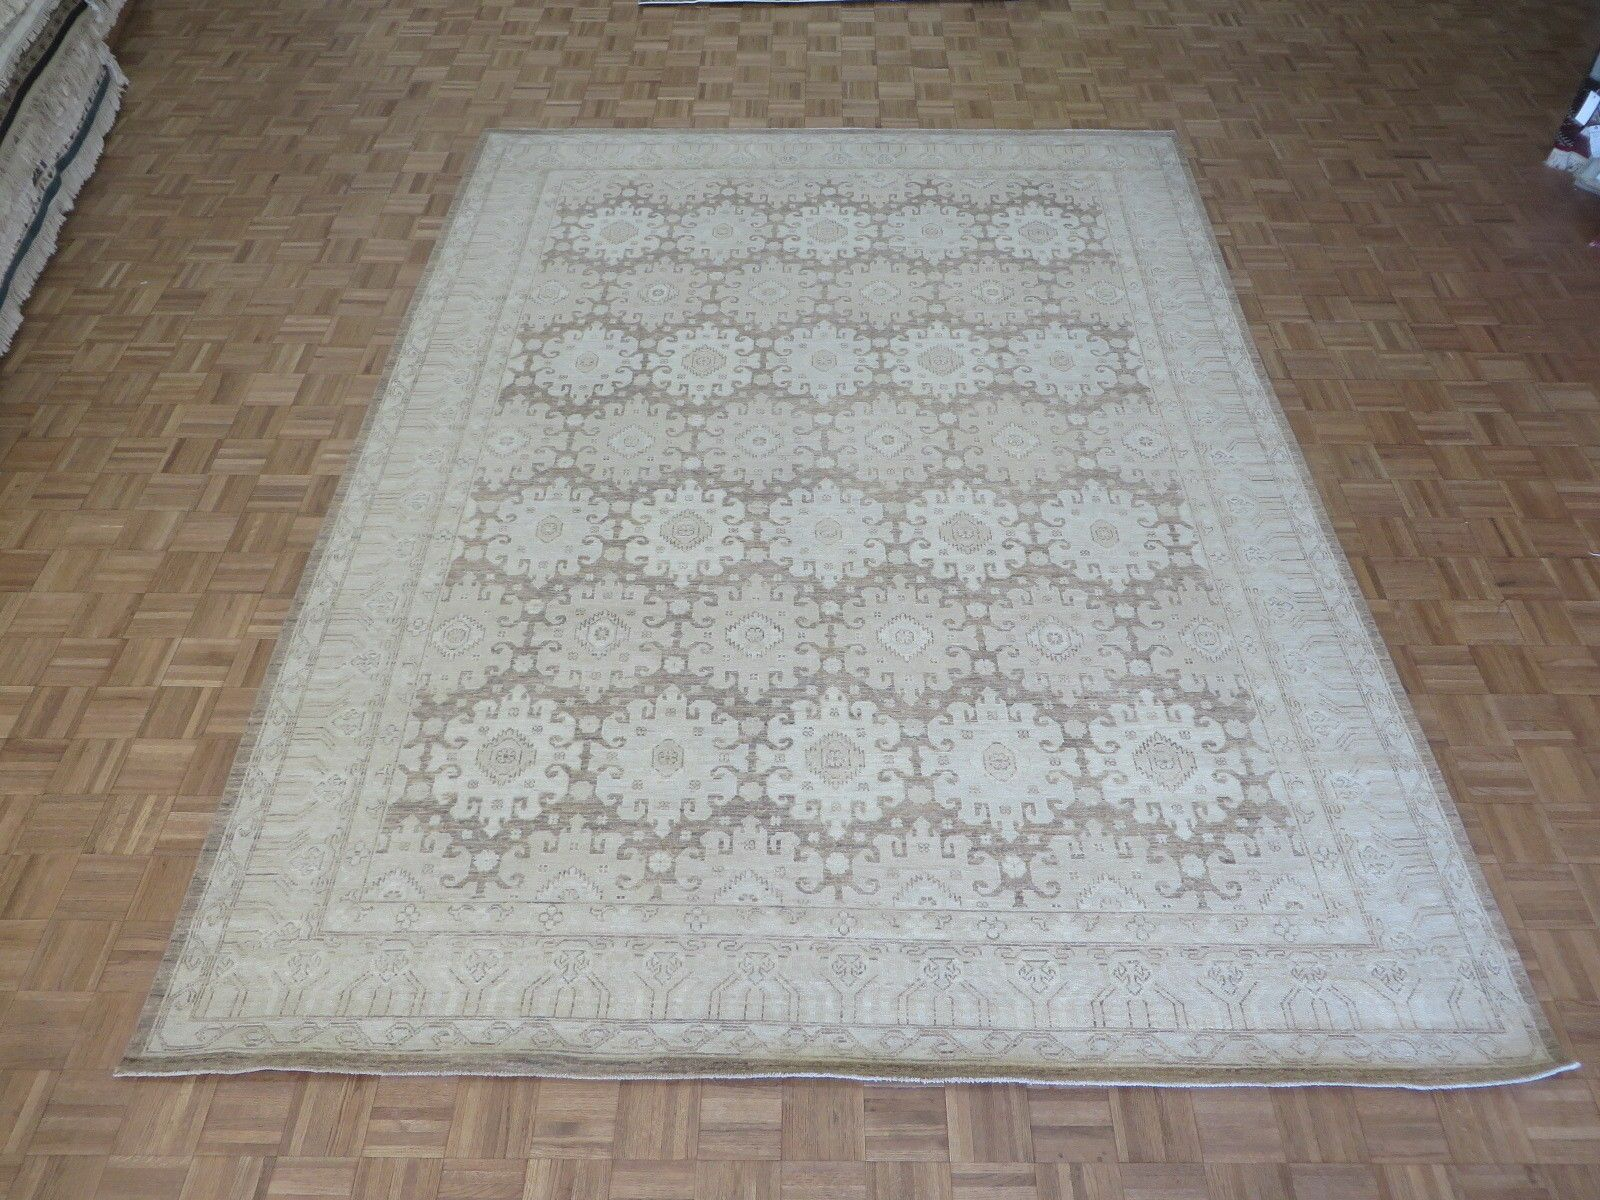 One-of-a-Kind Railsback Khotan Oushak Hand-Knotted Wool Brown Area Rug